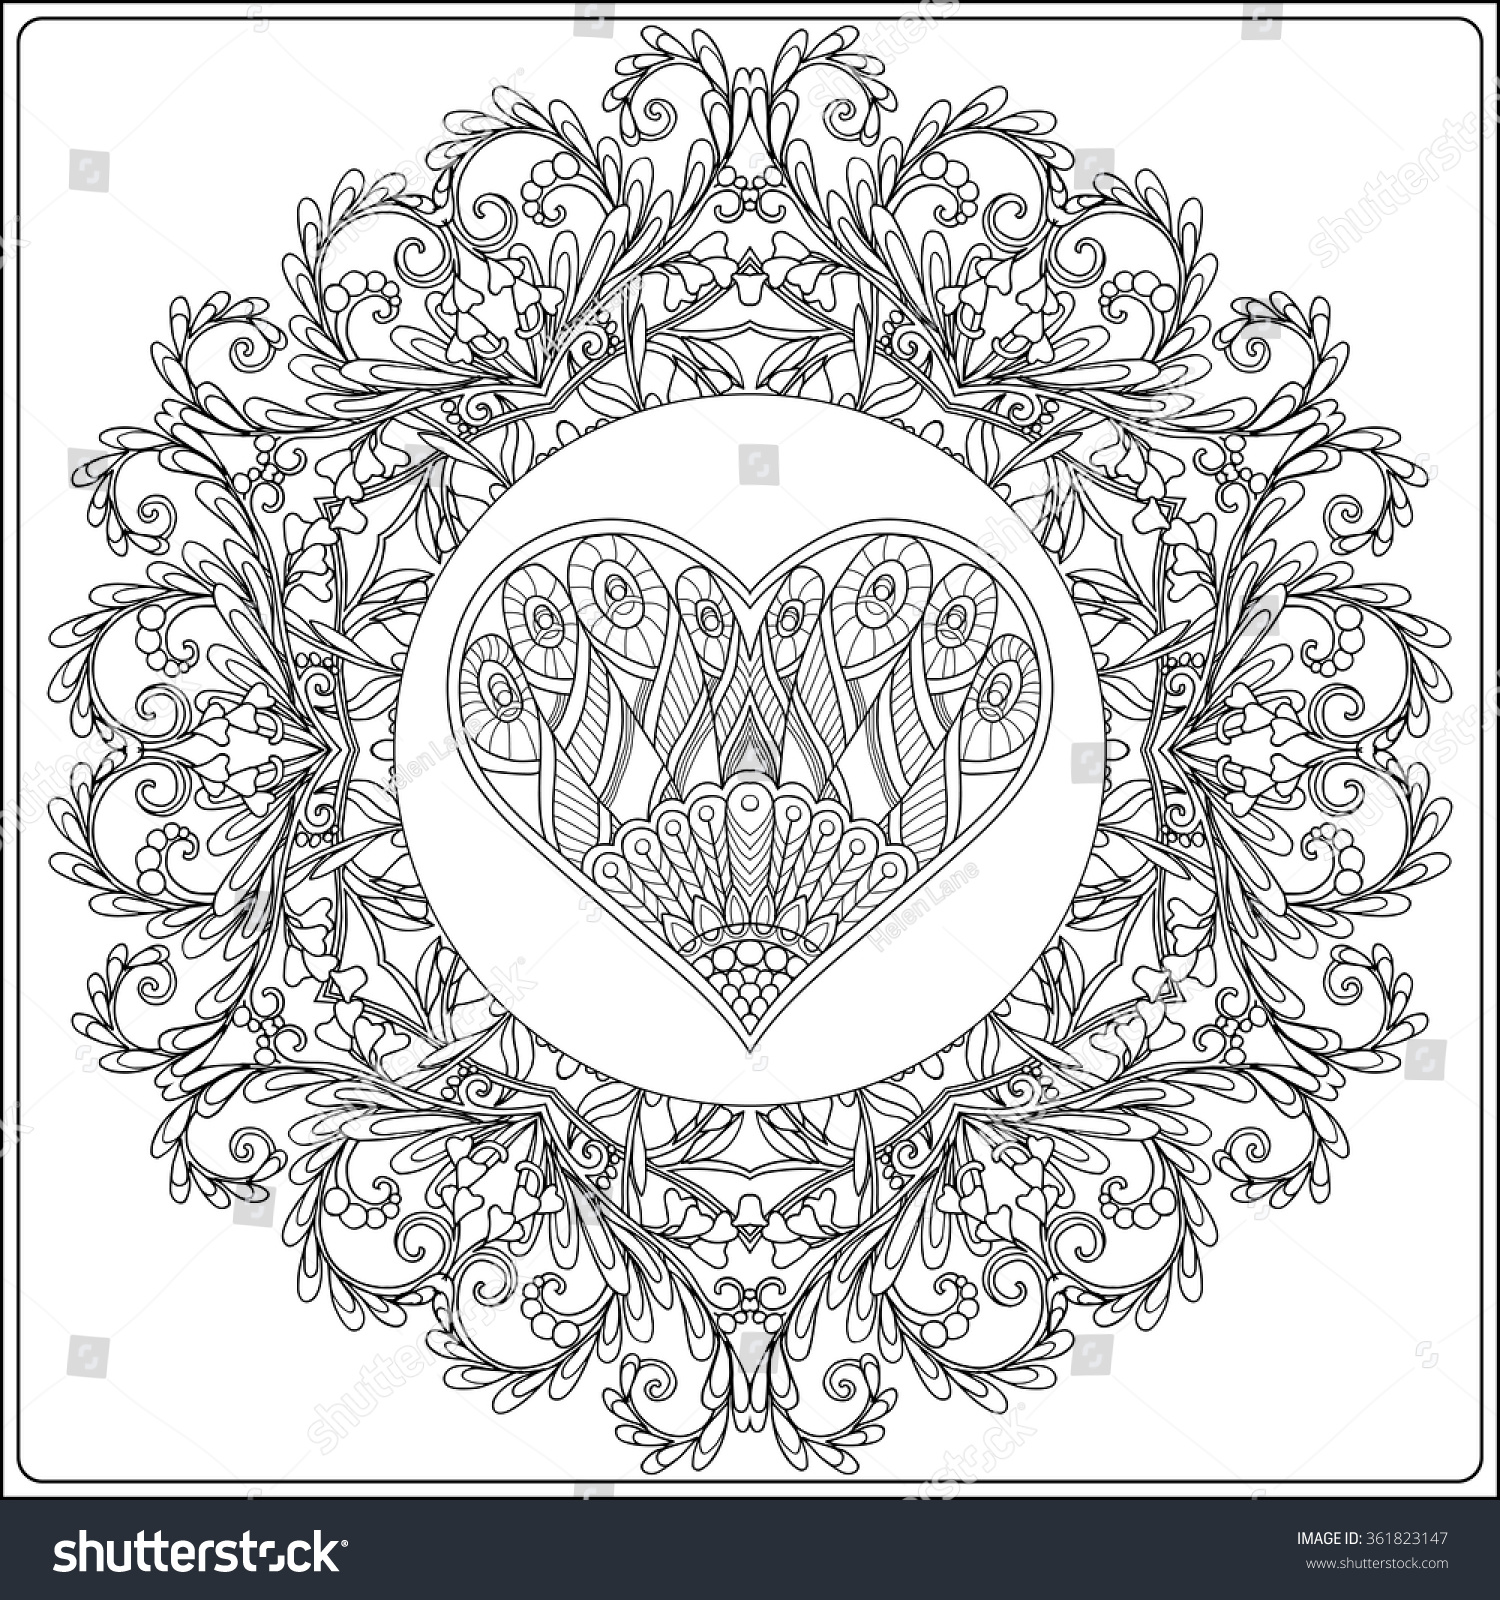 Hand Drawn Floral Mandala And Decorative Love Heart For Valentines Day Vector IllustrationColoring Book Adult Older Children Coloring Page